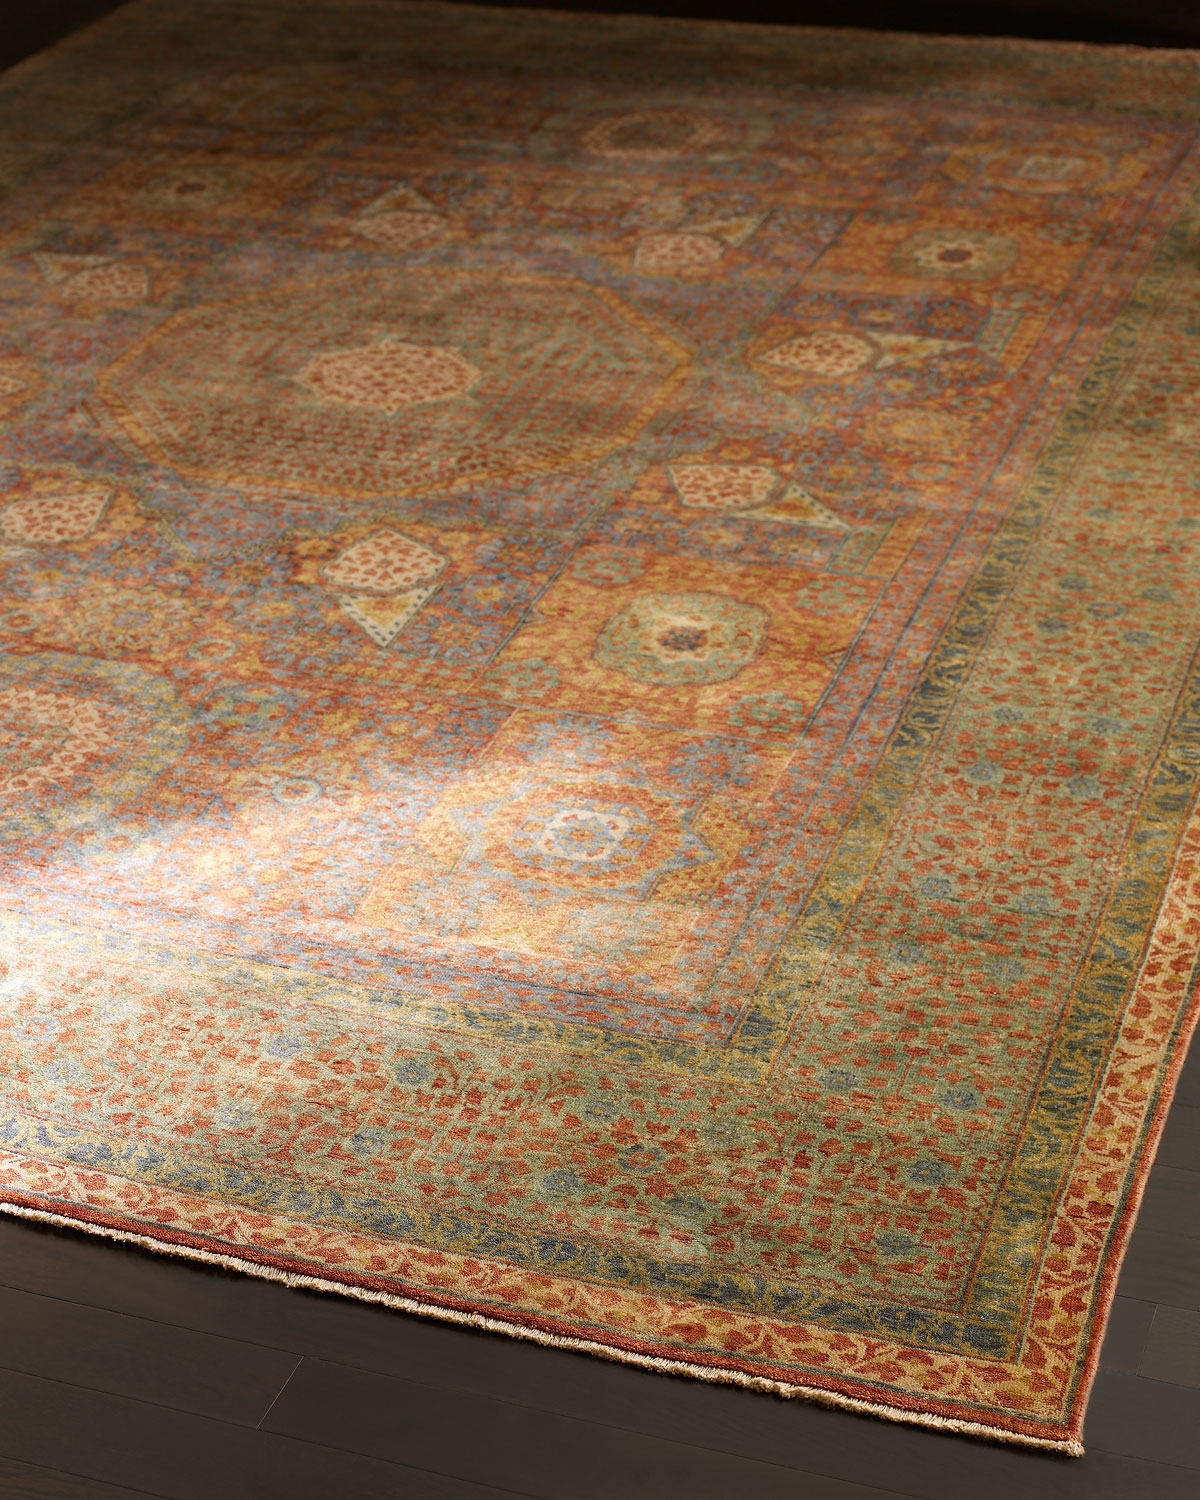 Exquisite Rugs Gable Colors Rug, 4' x 6'